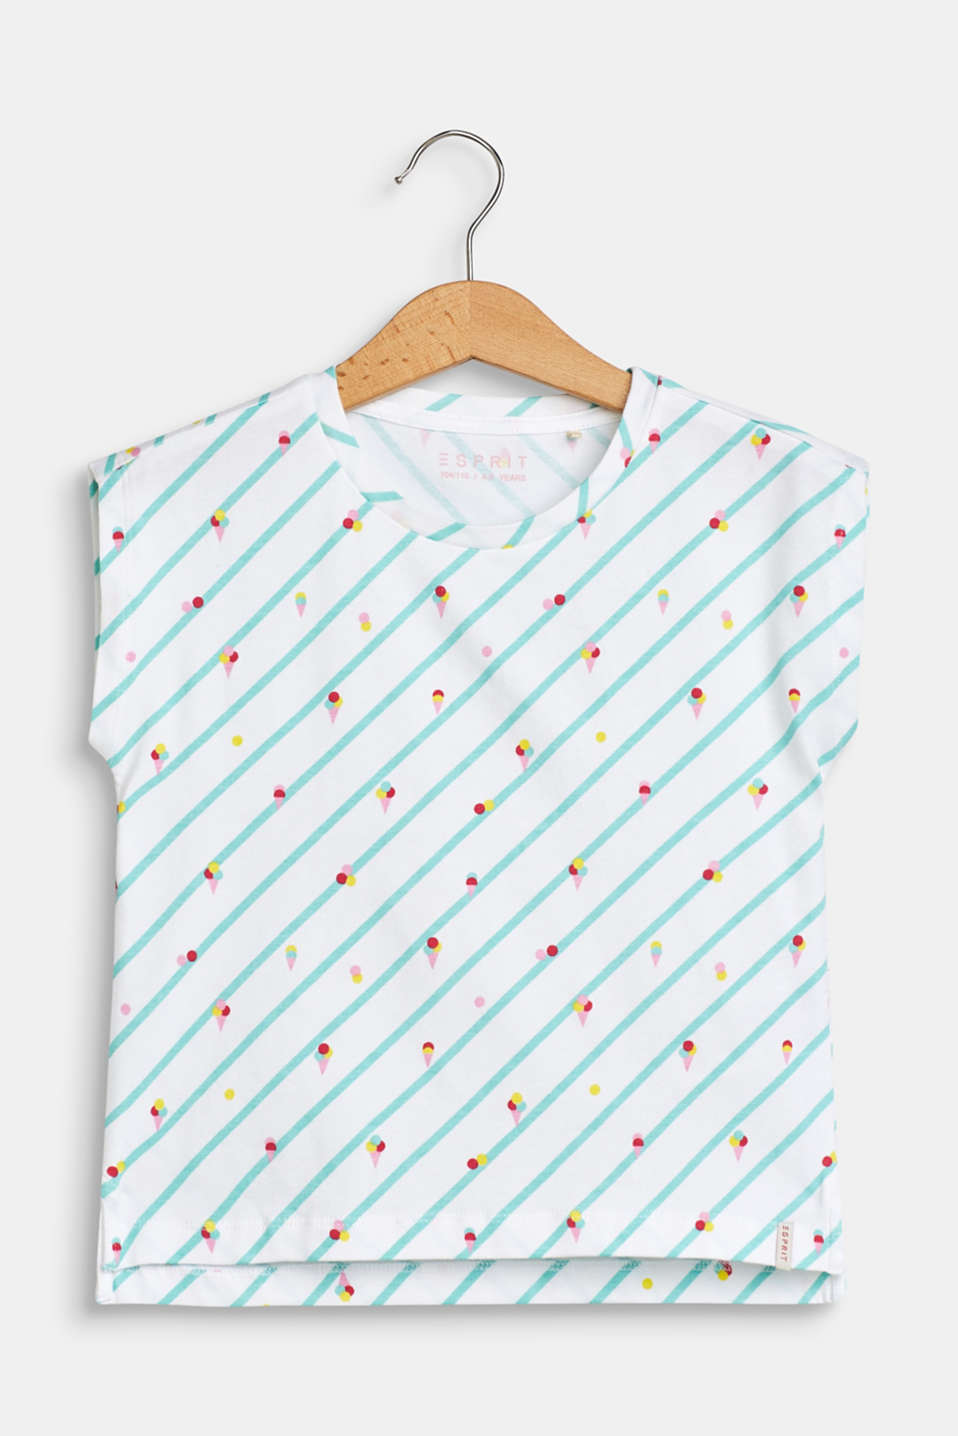 Esprit - T-shirt with an ice cream print, made of stretch cotton